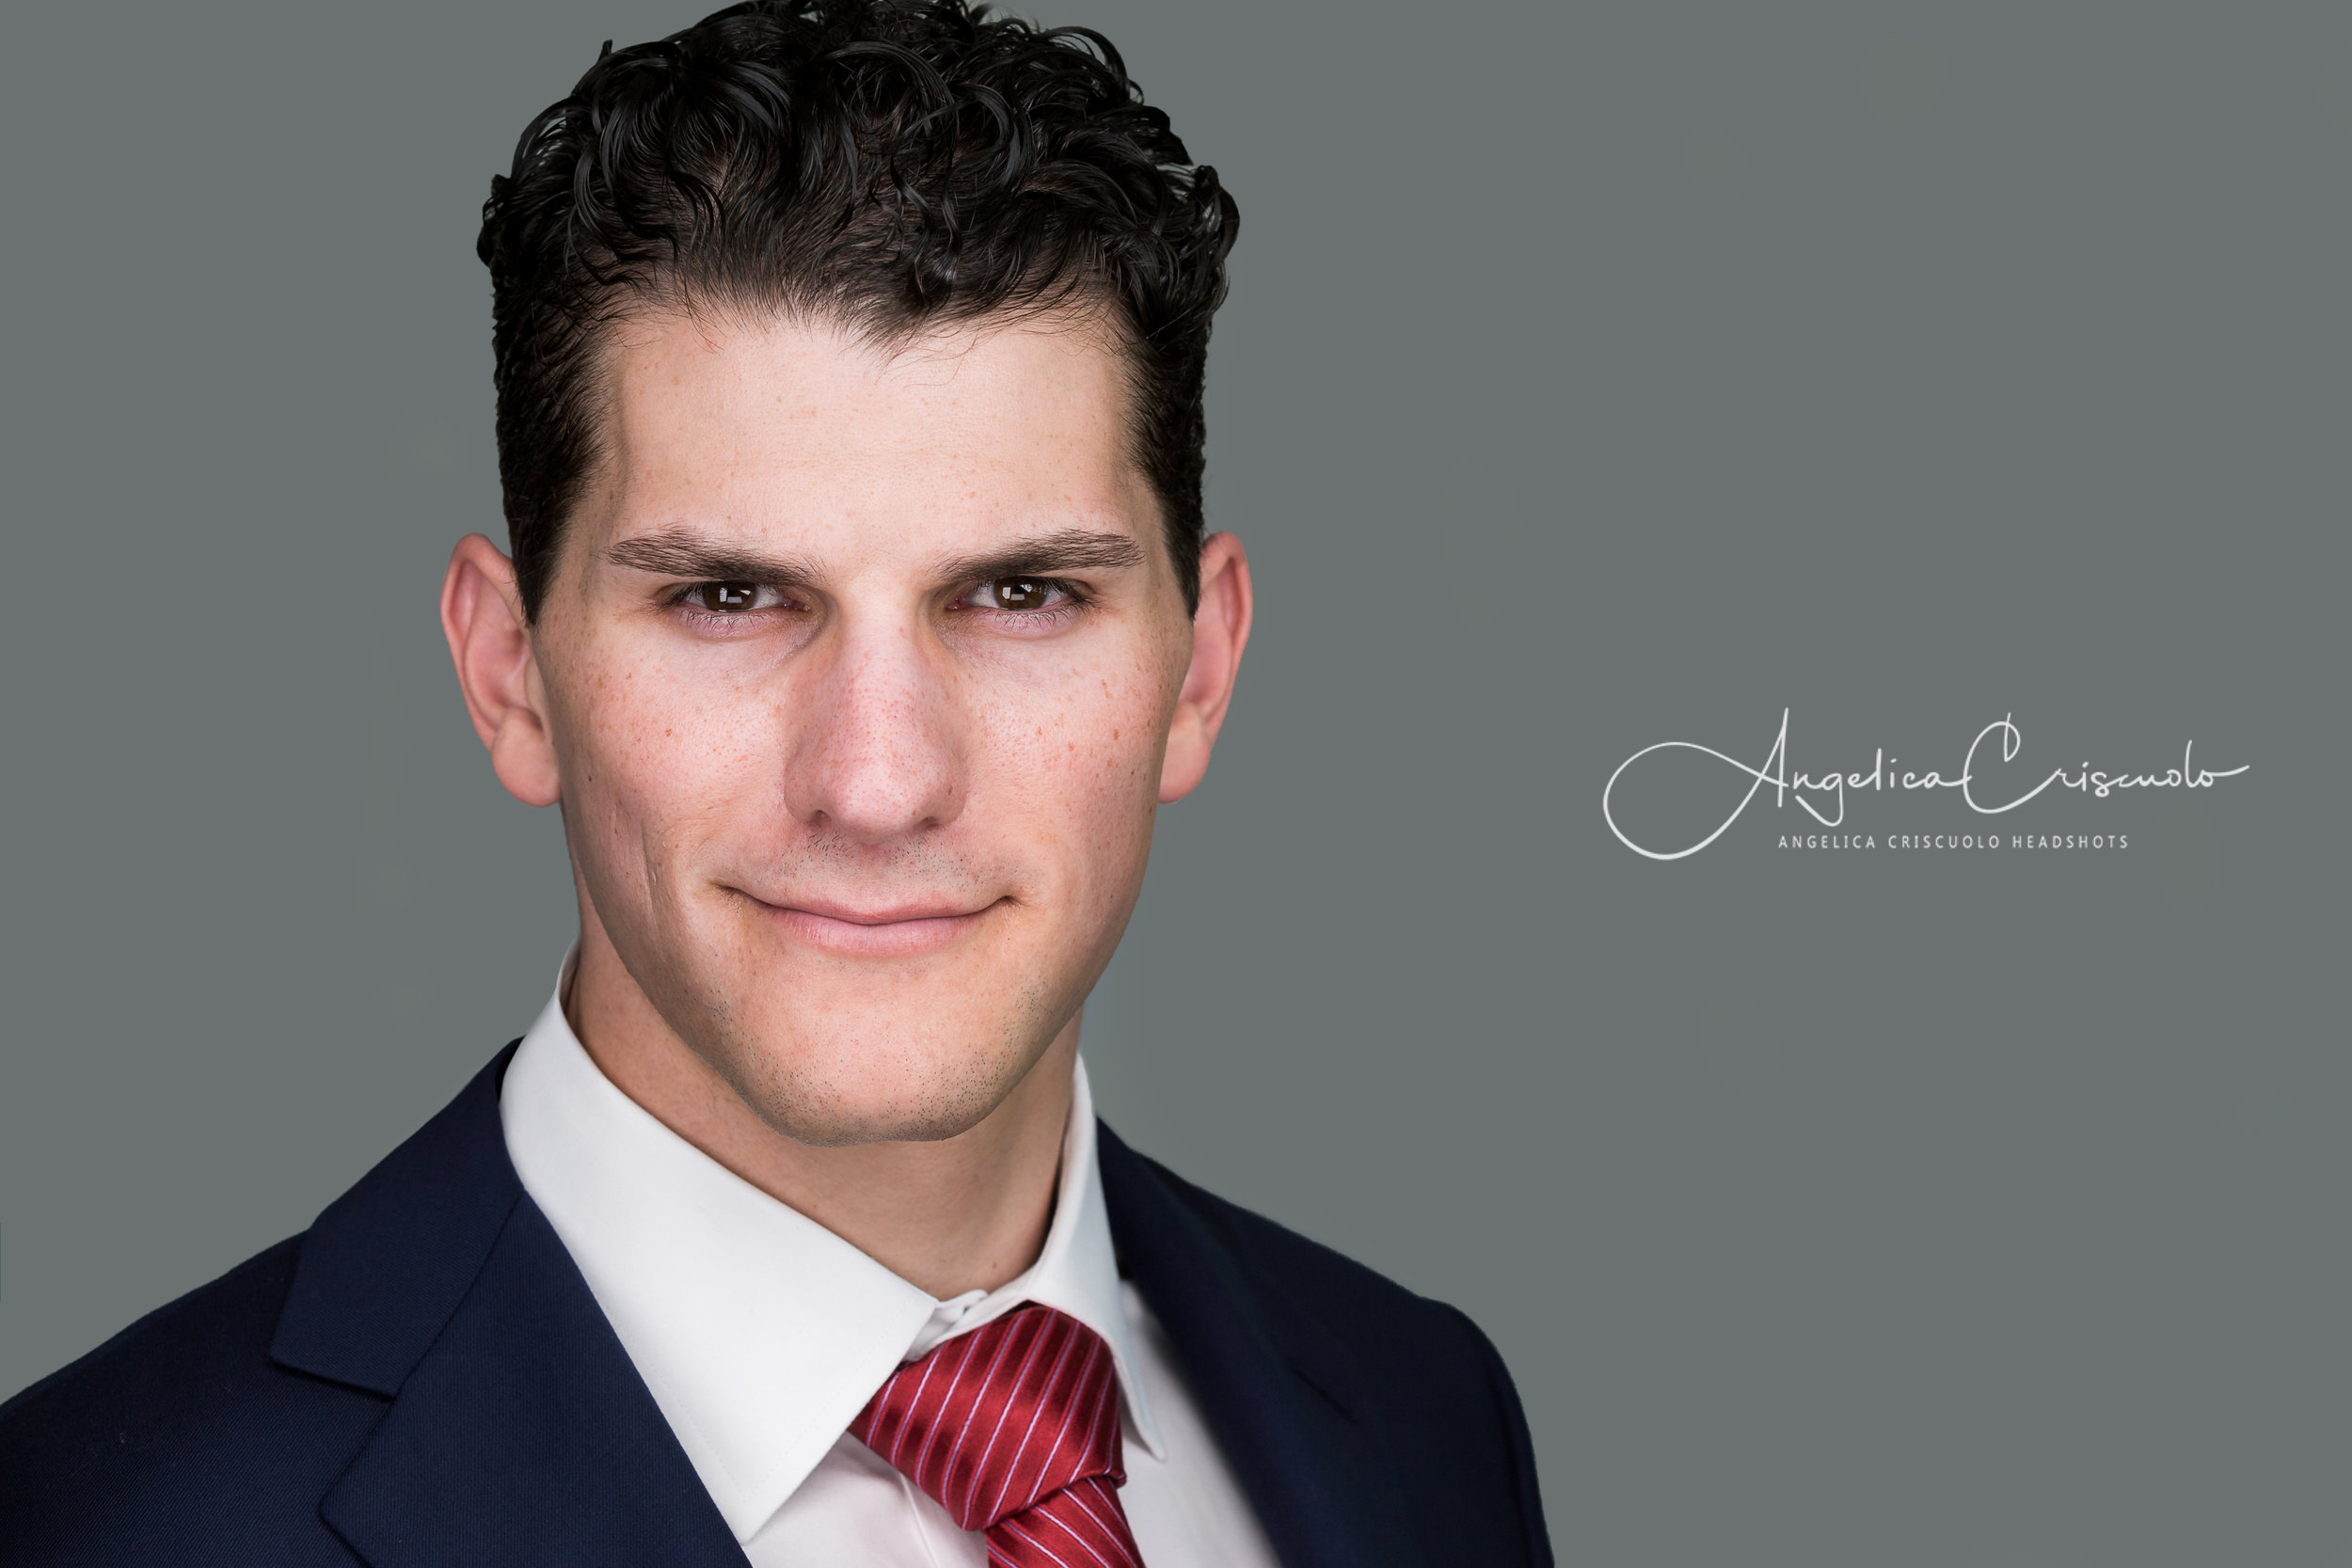 New York Corporate Headshot photographer